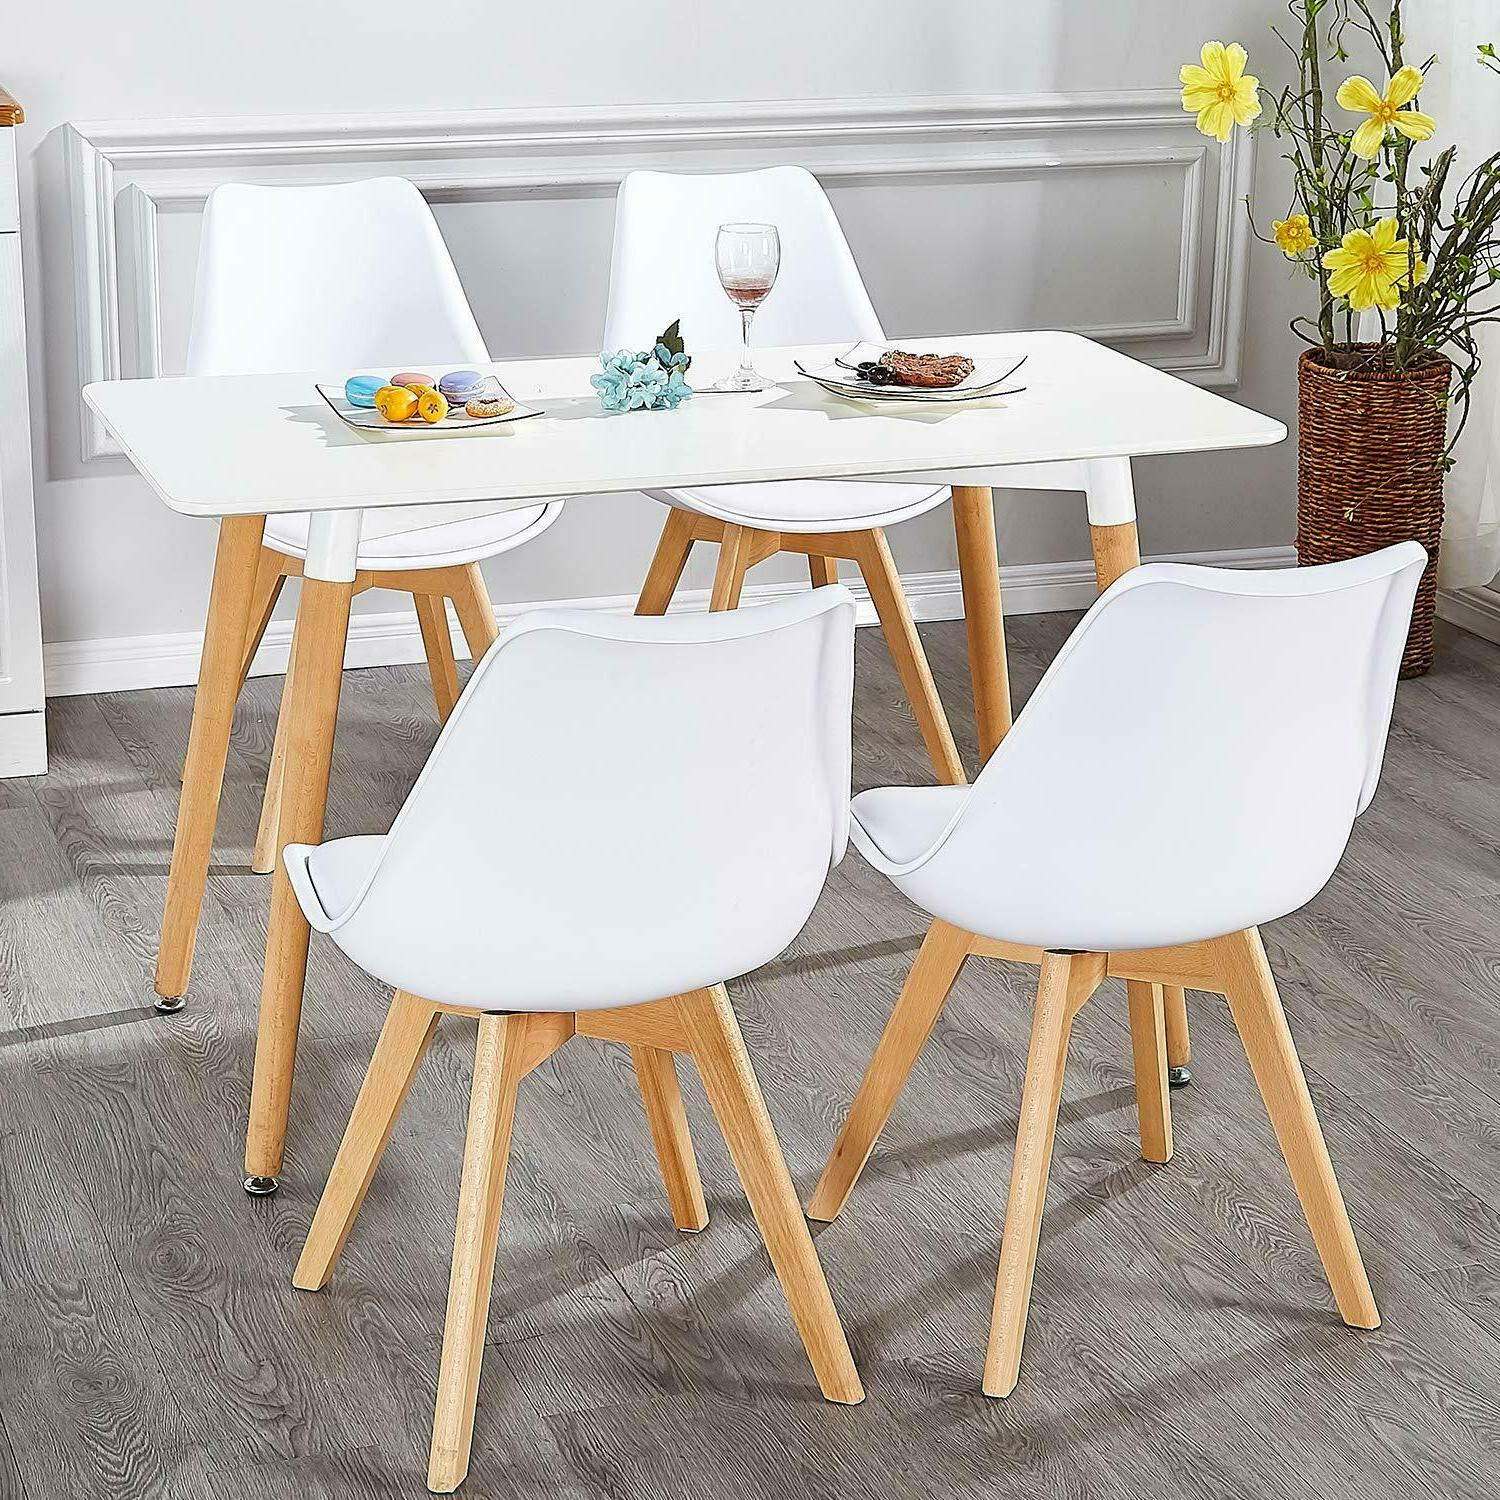 Dining Chairs Durable PU Solid Wooden Set of 4,